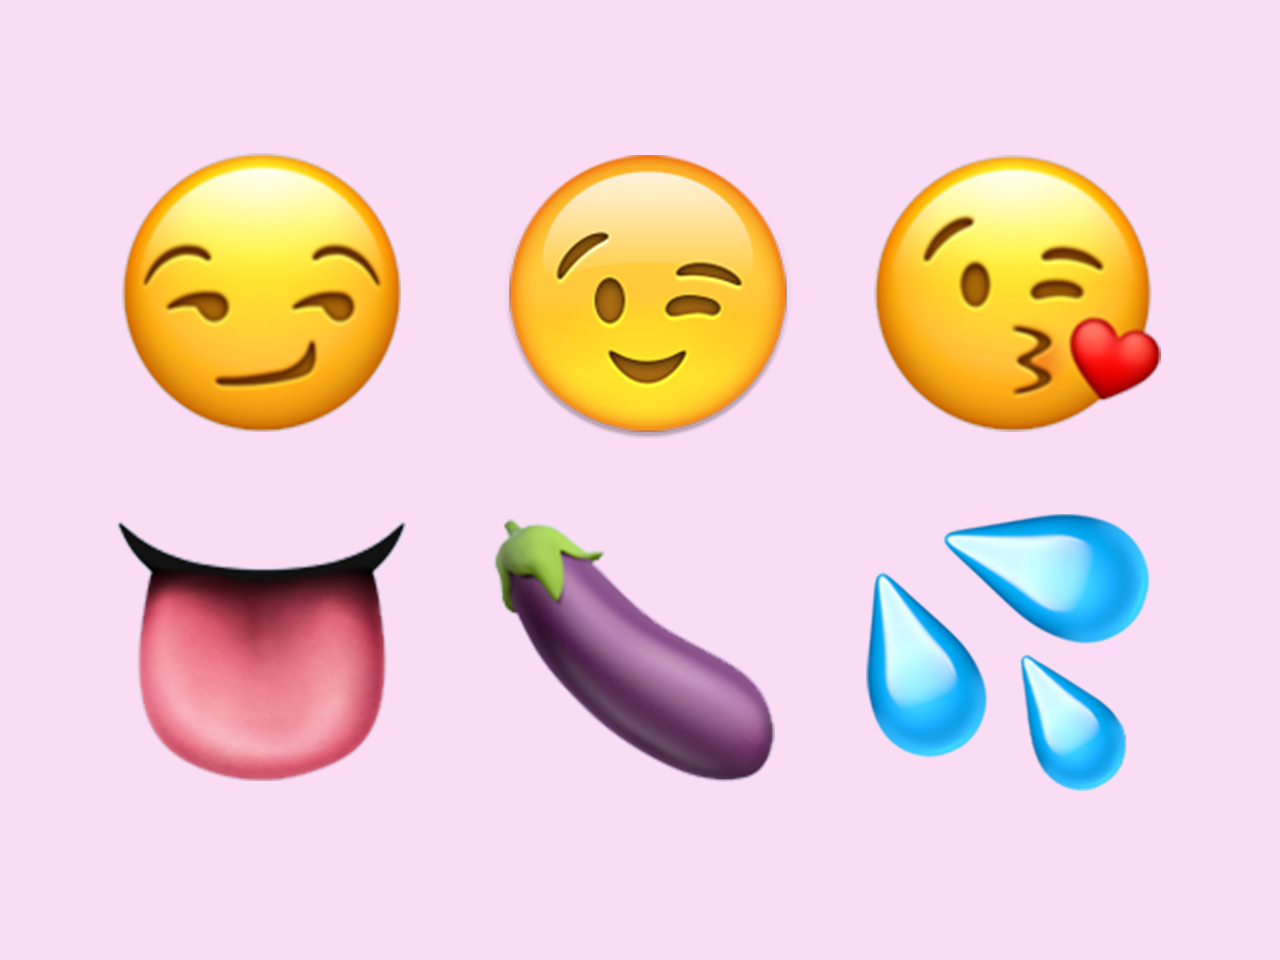 sexiest emoji — smirking face, winking face, blowing a kiss face, tongue, eggplant, and sweat droplets emoji on pink background